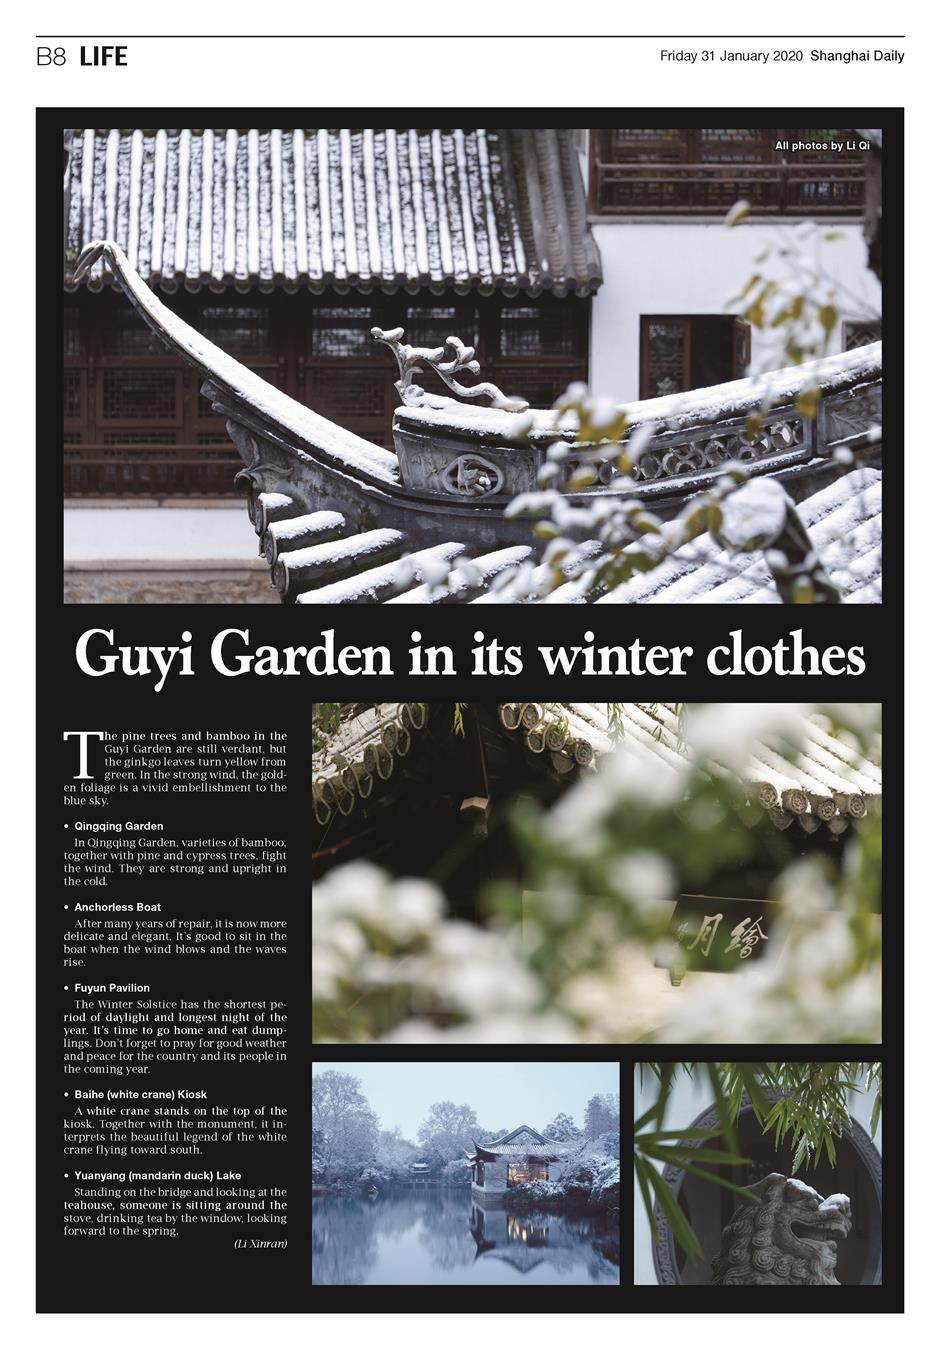 Guyi Garden wrapped in its winter clothes